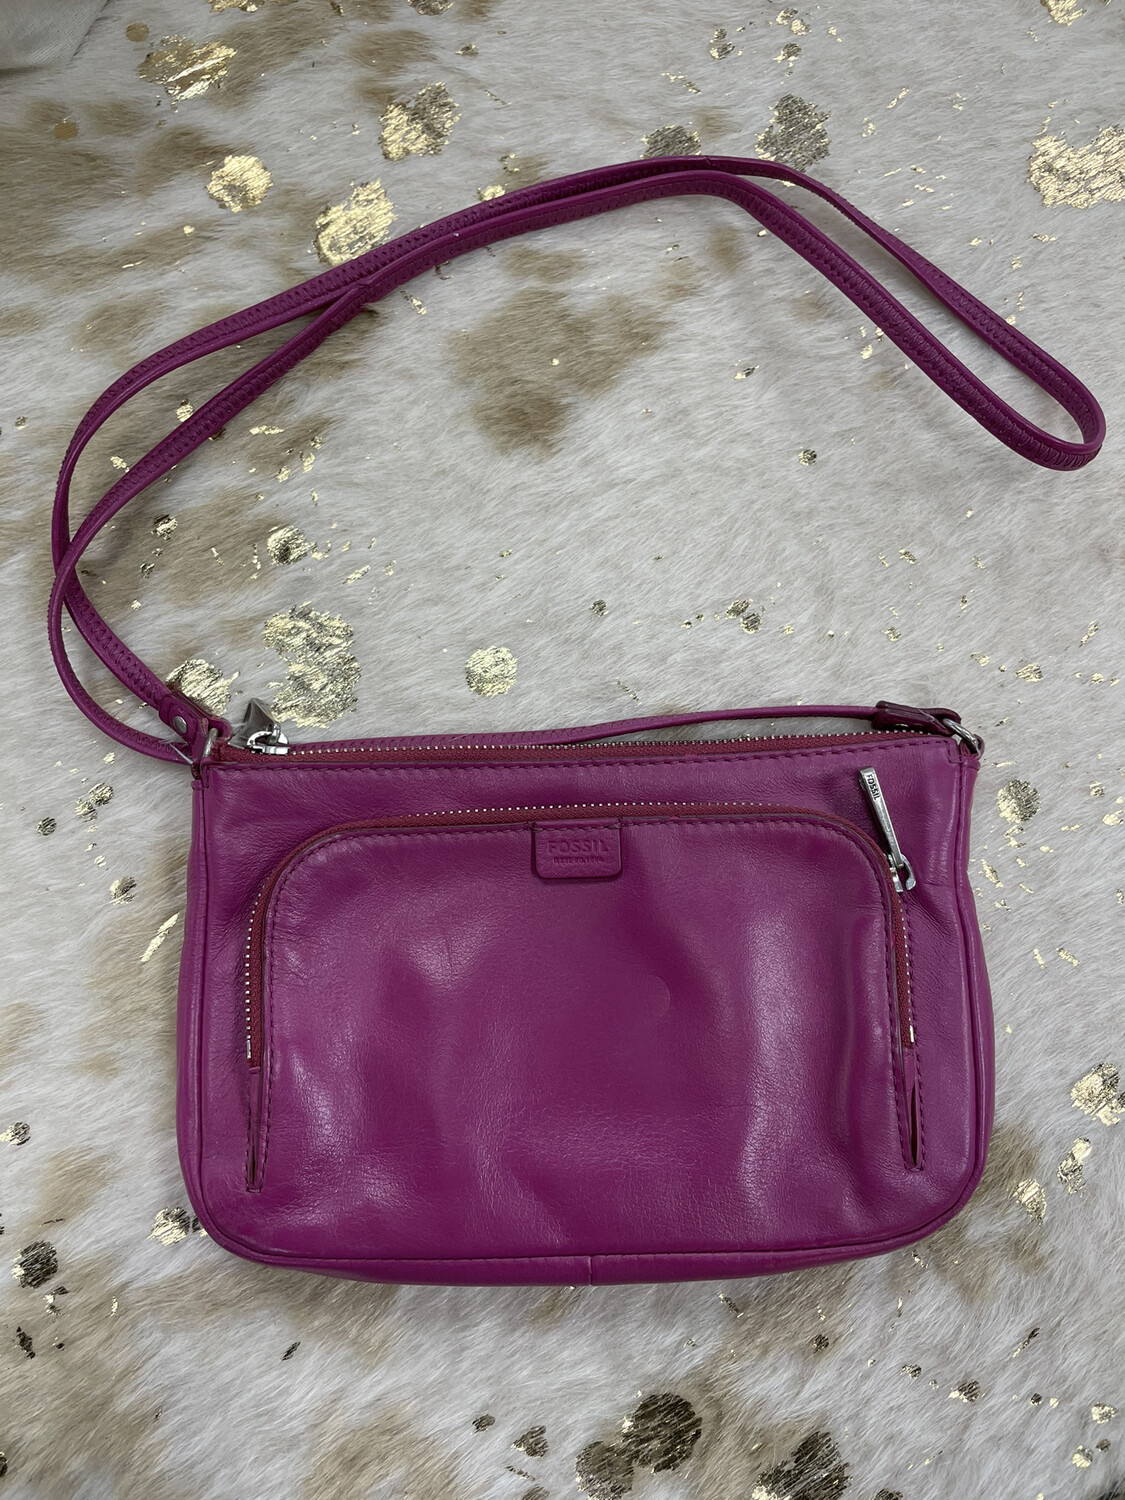 Fossil Pink Leather Crossbody